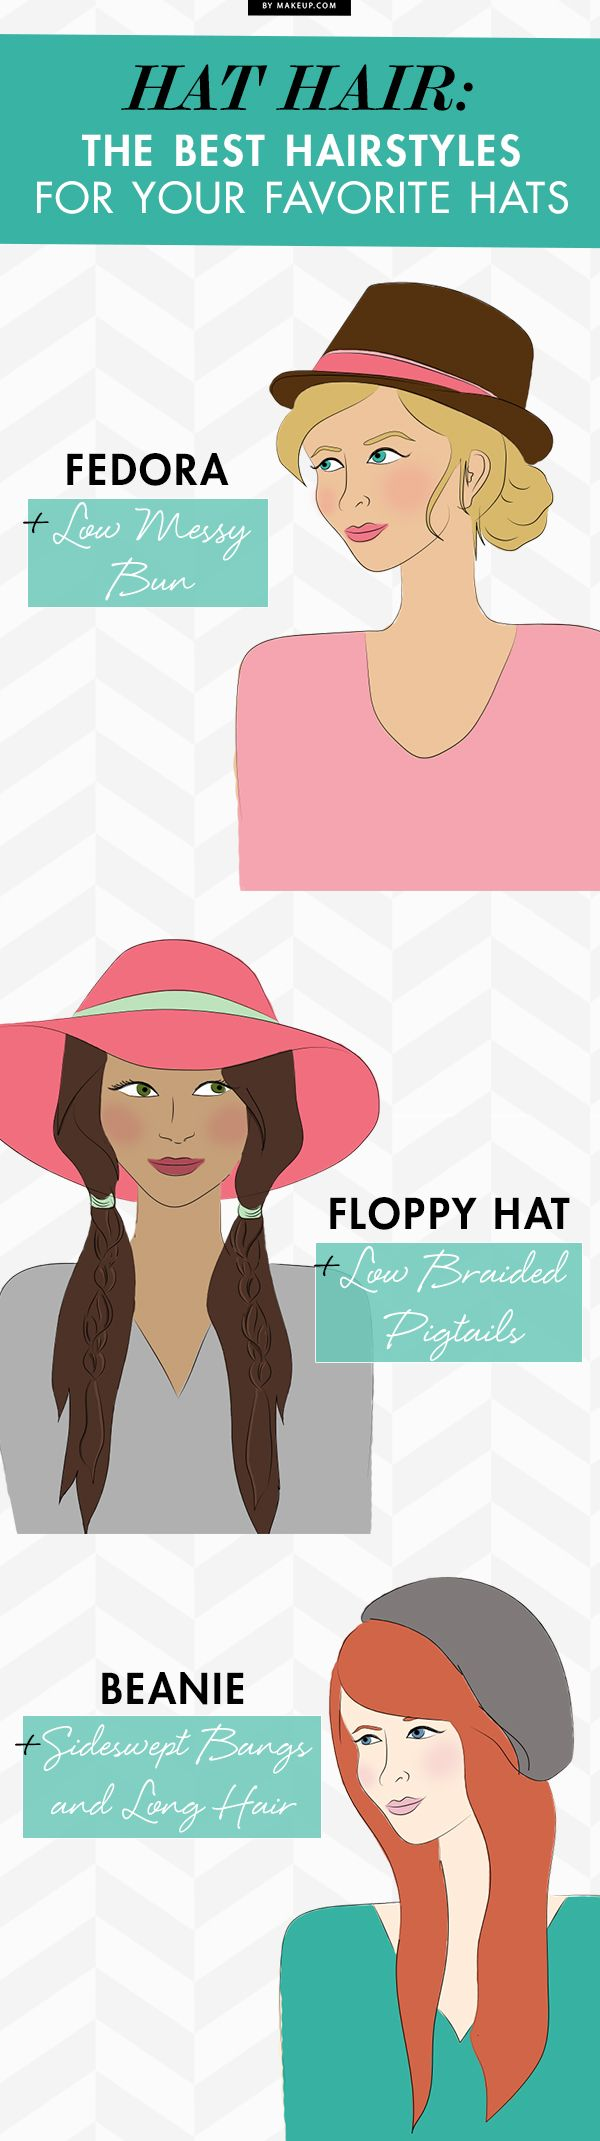 I always love hats until I see them on my head. Maybe this will help. Hat Hair: Favorite Hairstyles for Our Favorite Hats